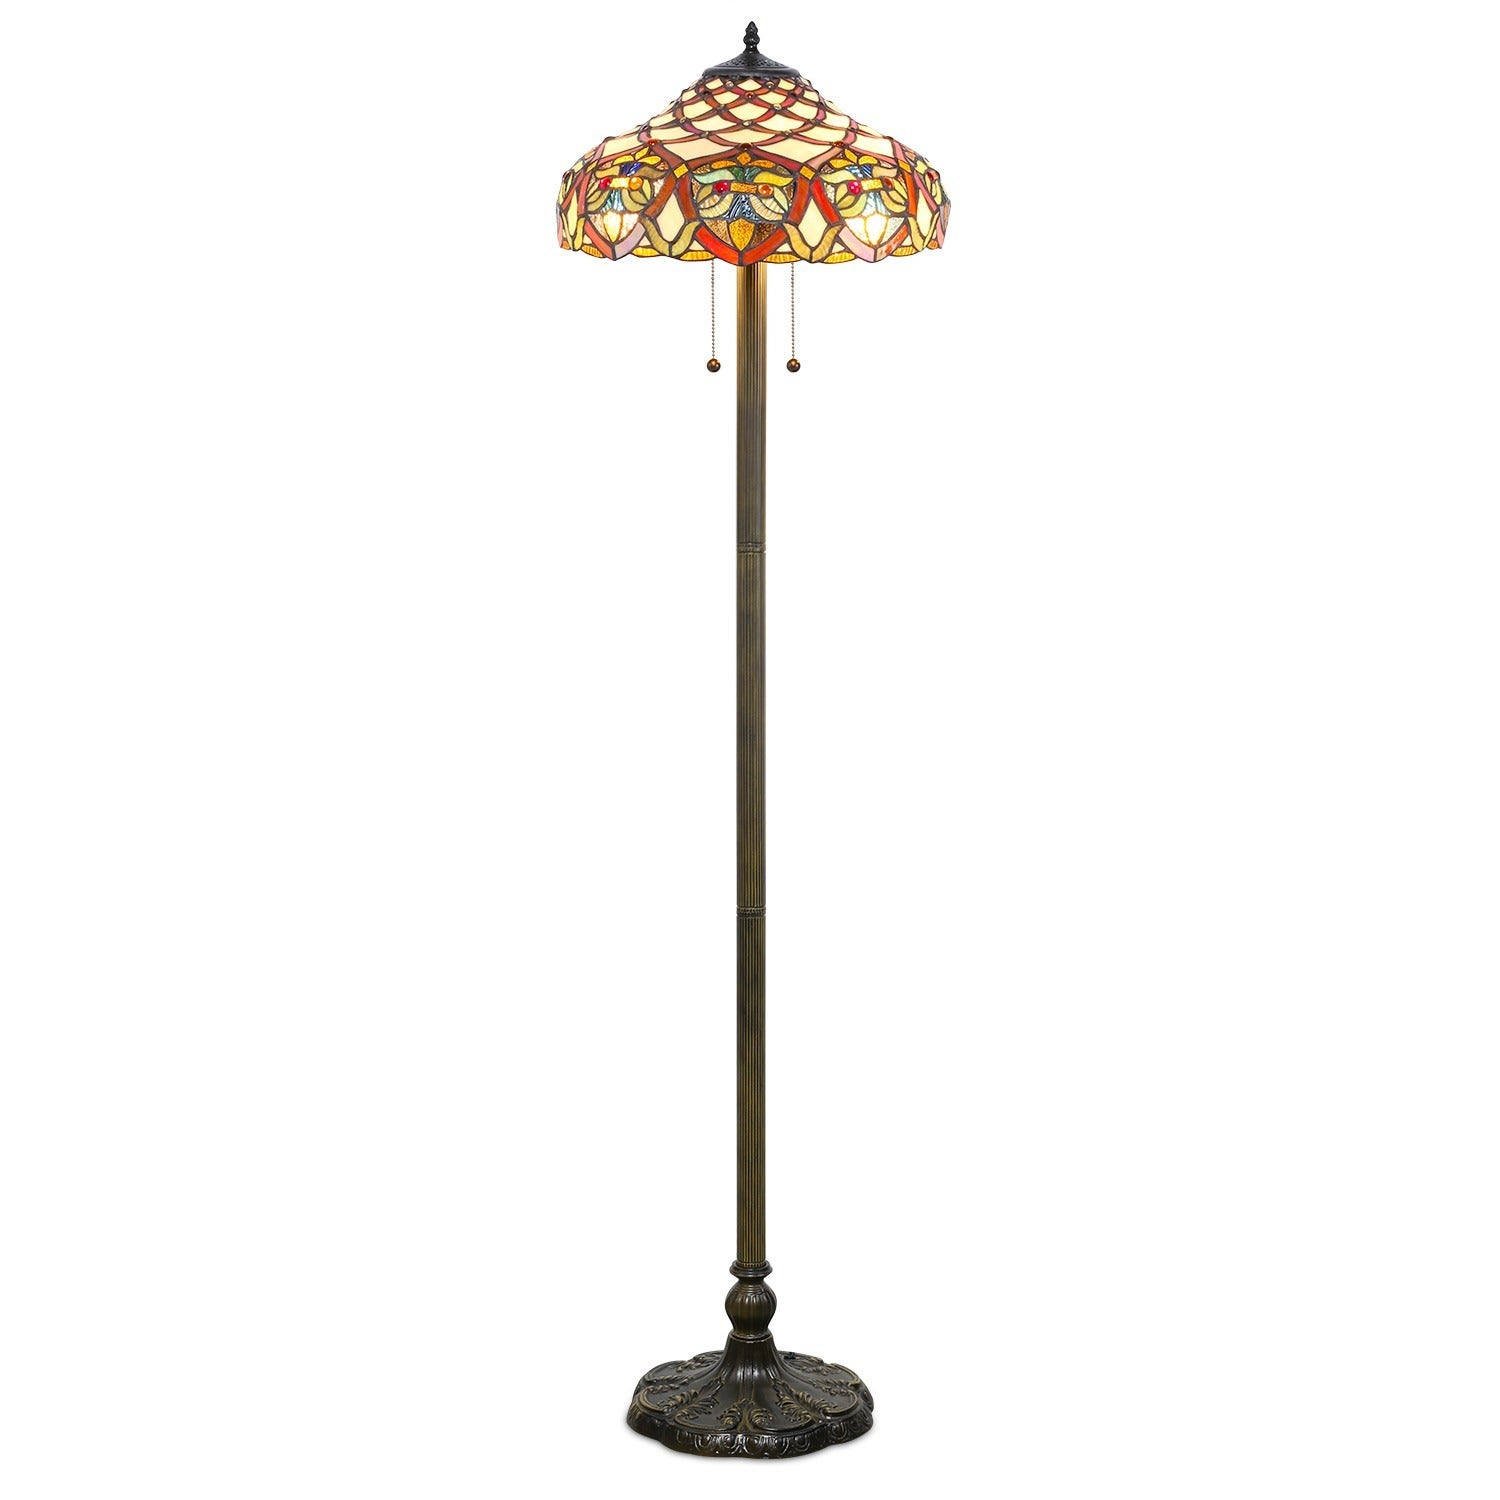 1908 Studios Tiffany-style Baroque Floor Lamp, Brown (Glass)